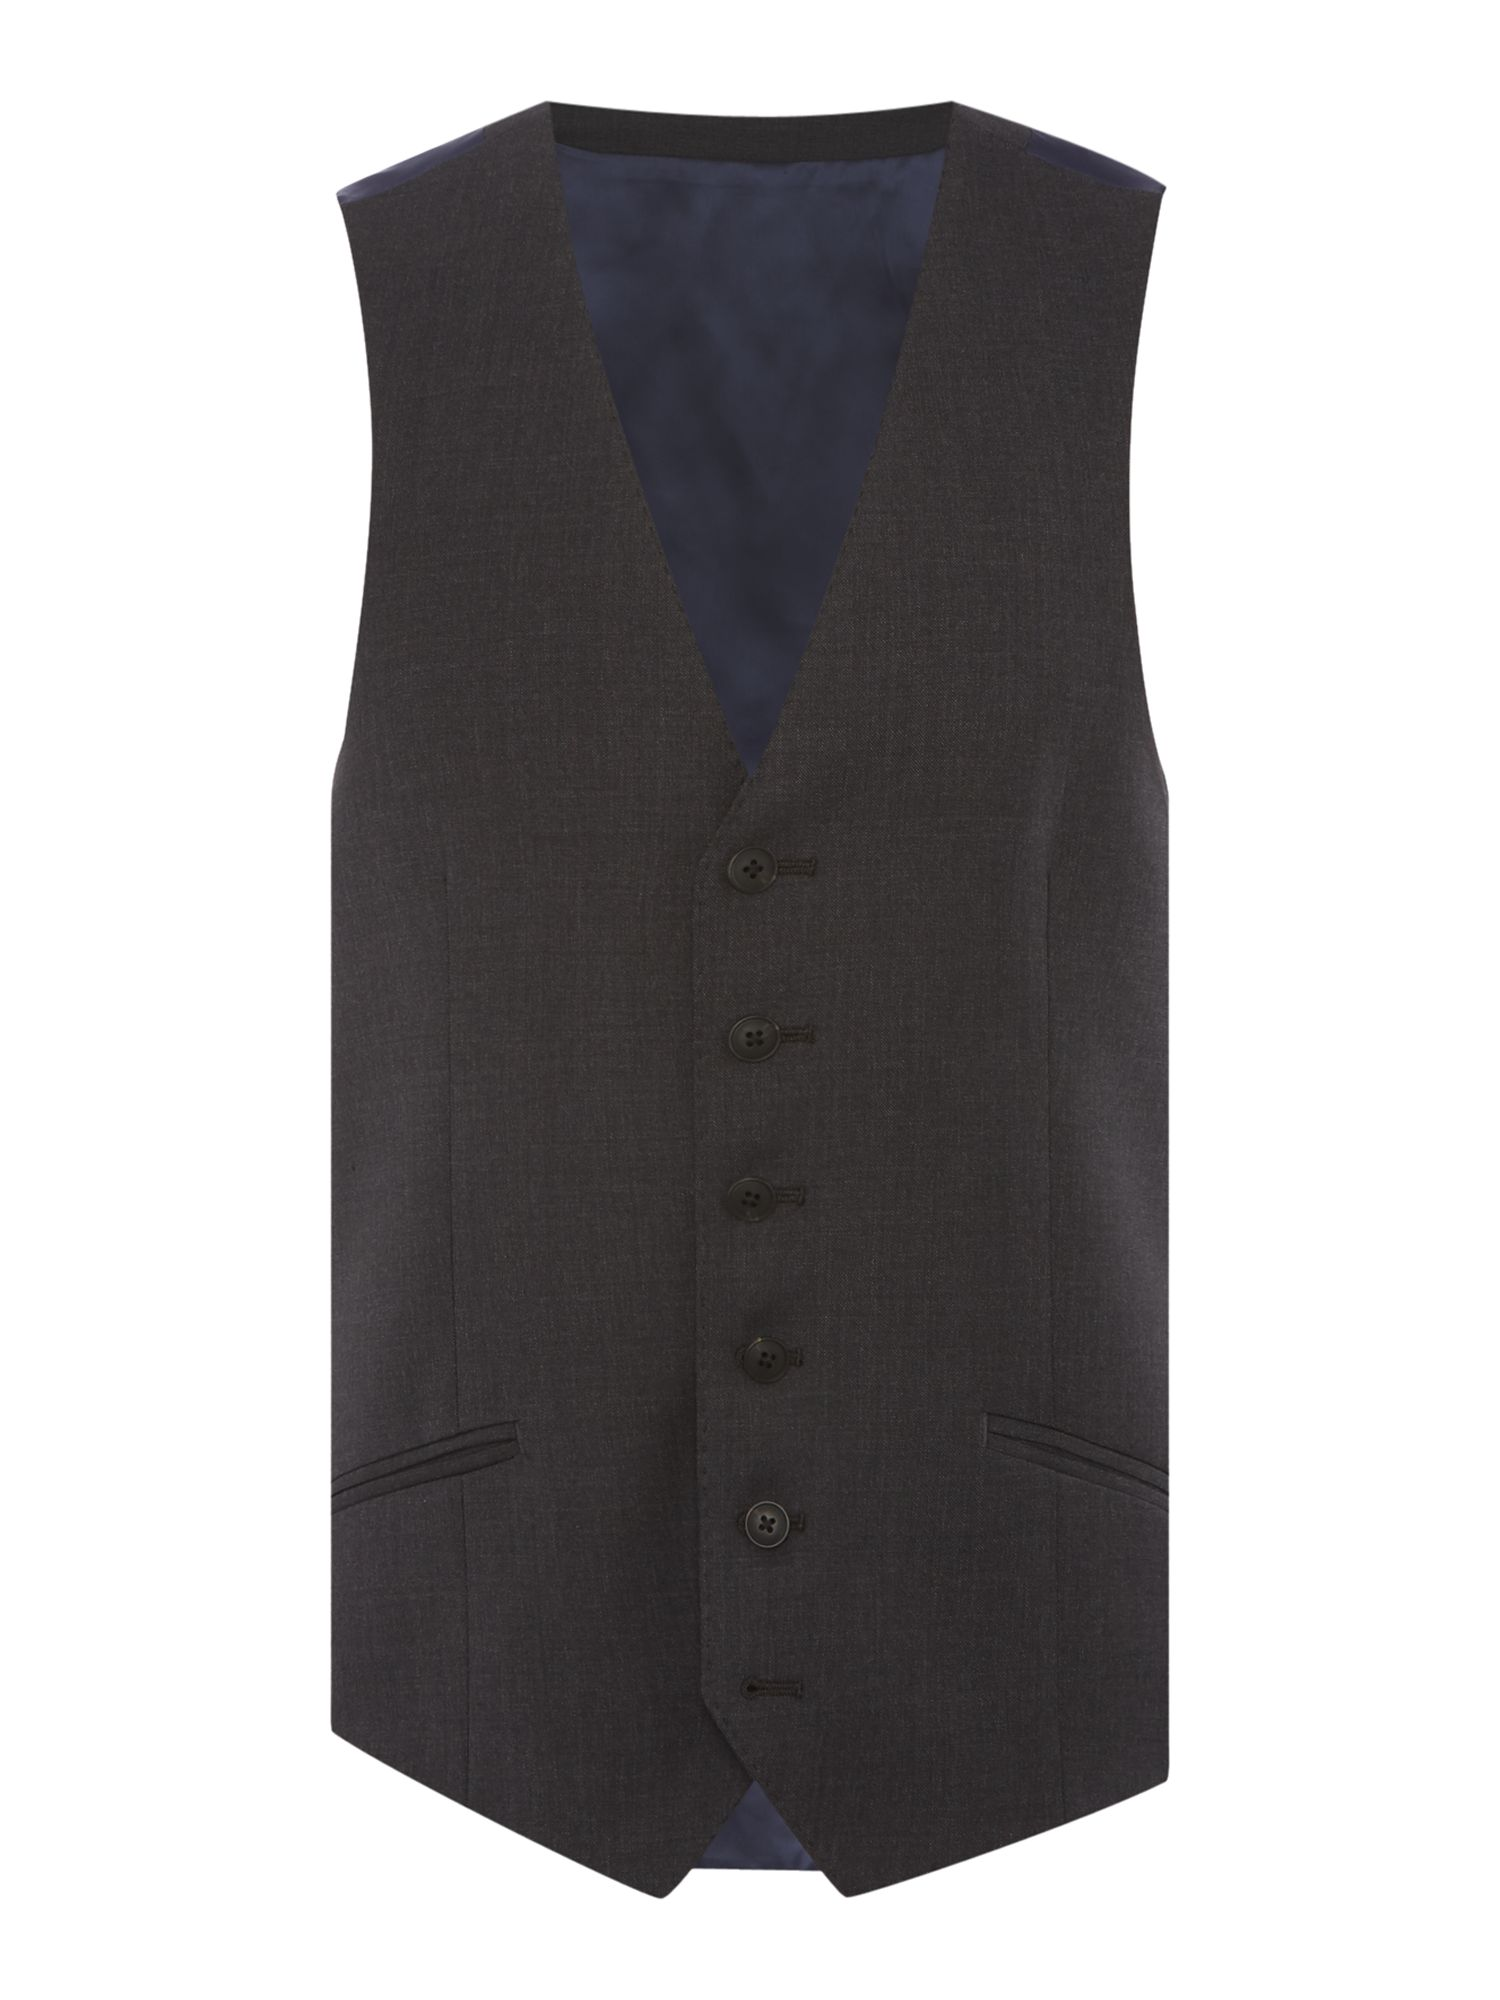 Men's Richard James Mayfair Charcoal Pic N Pic Waistcoat, Charcoal